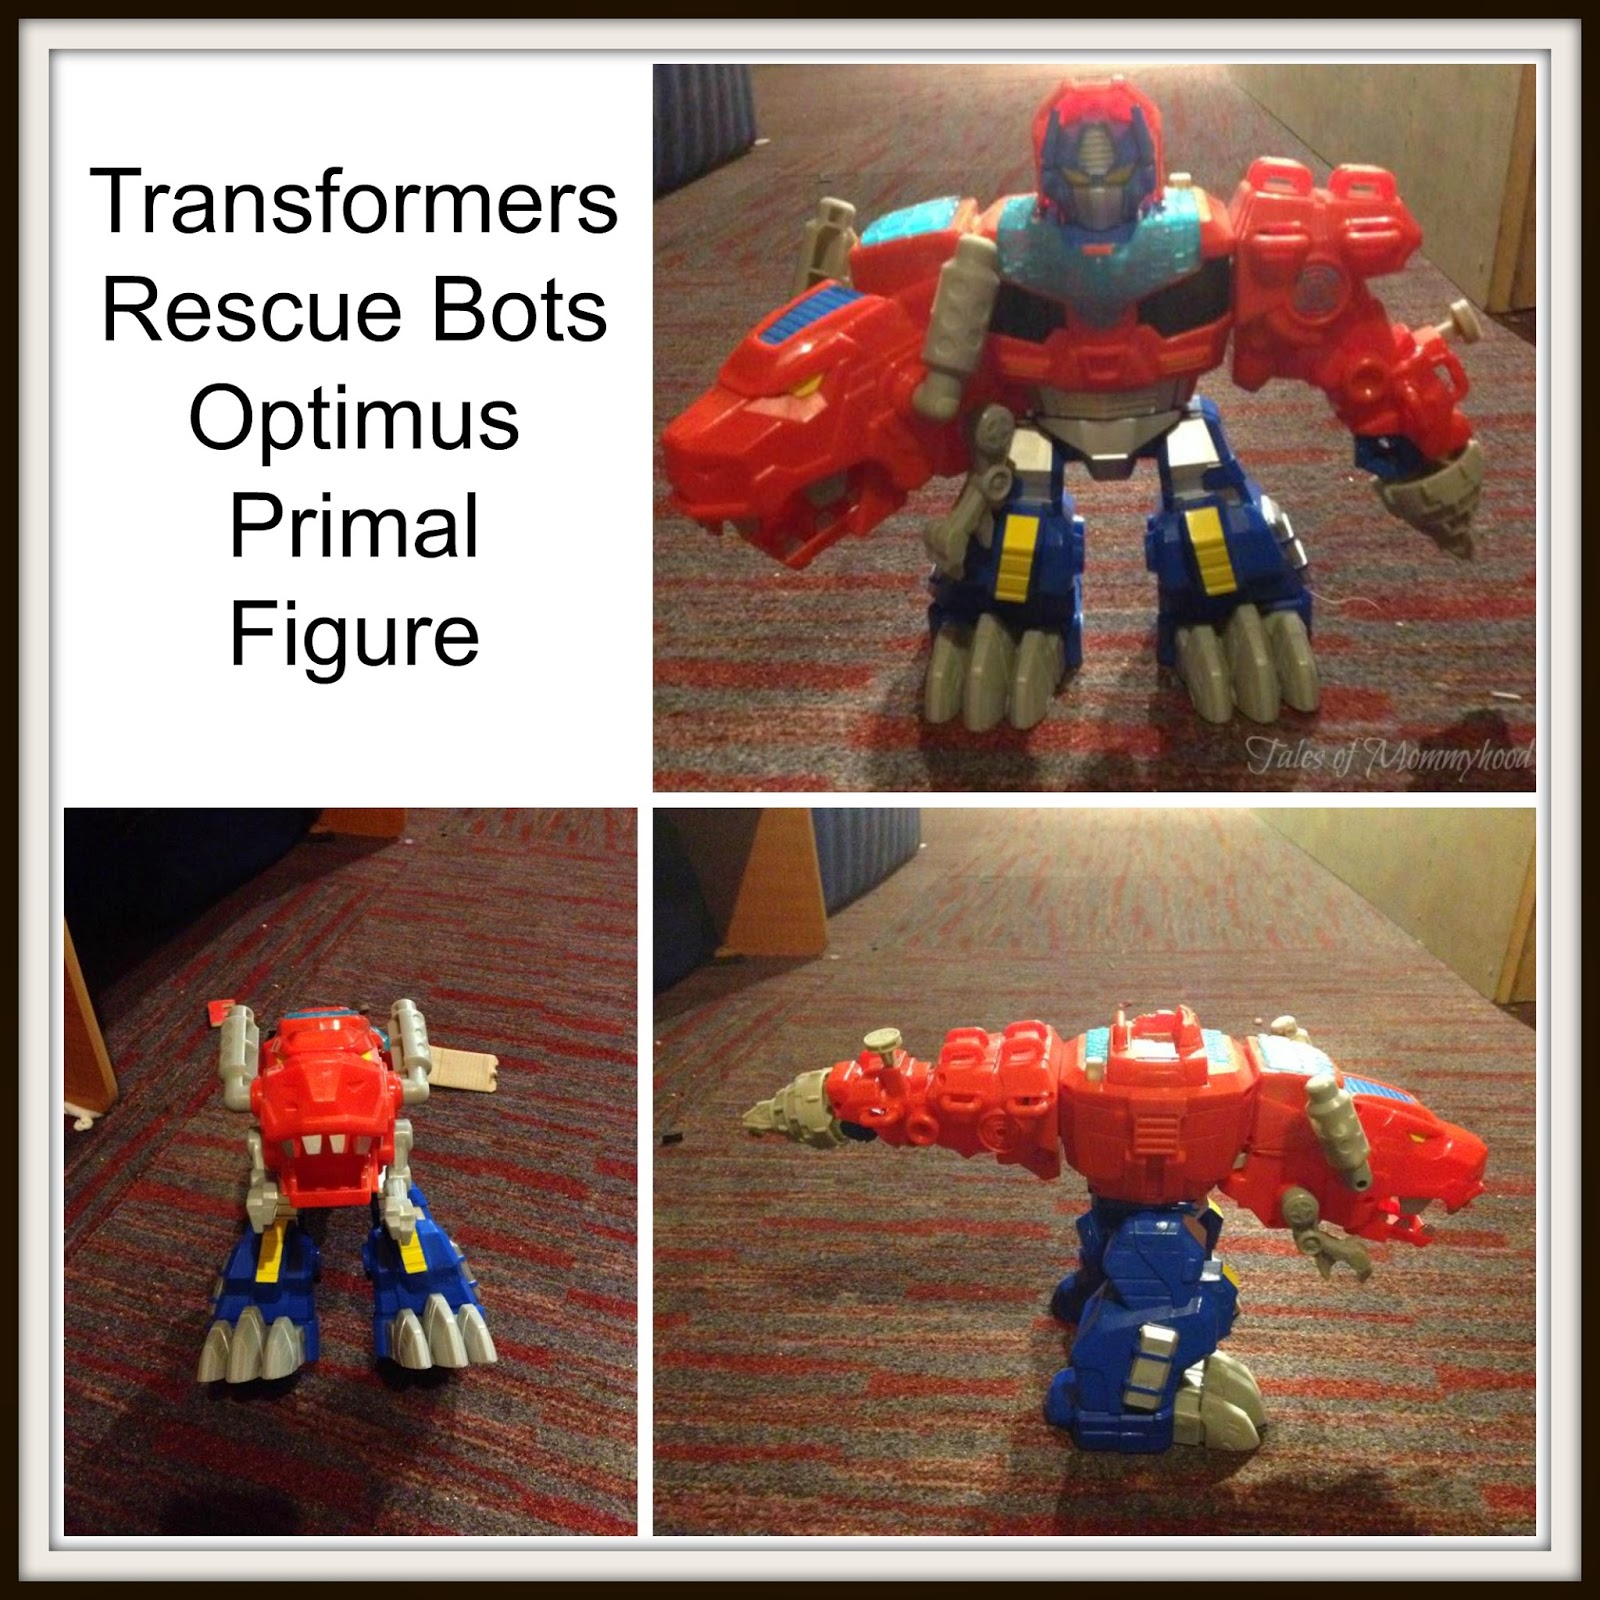 toys, rescue bots, transformers, kids, optimus prime